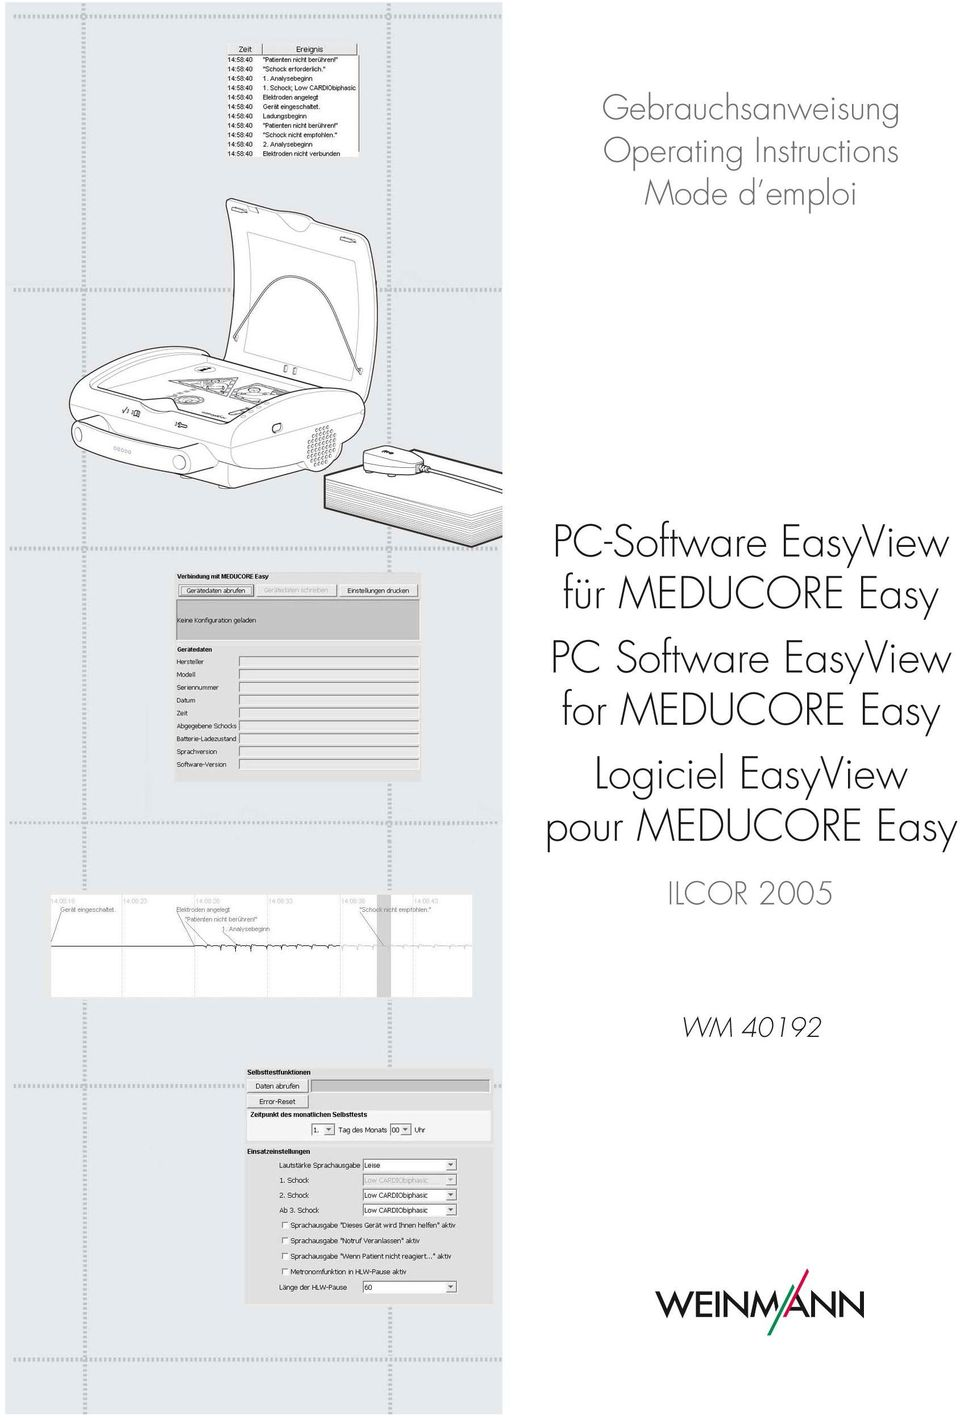 PC Software EasyView for MEDUCORE Easy Logiciel